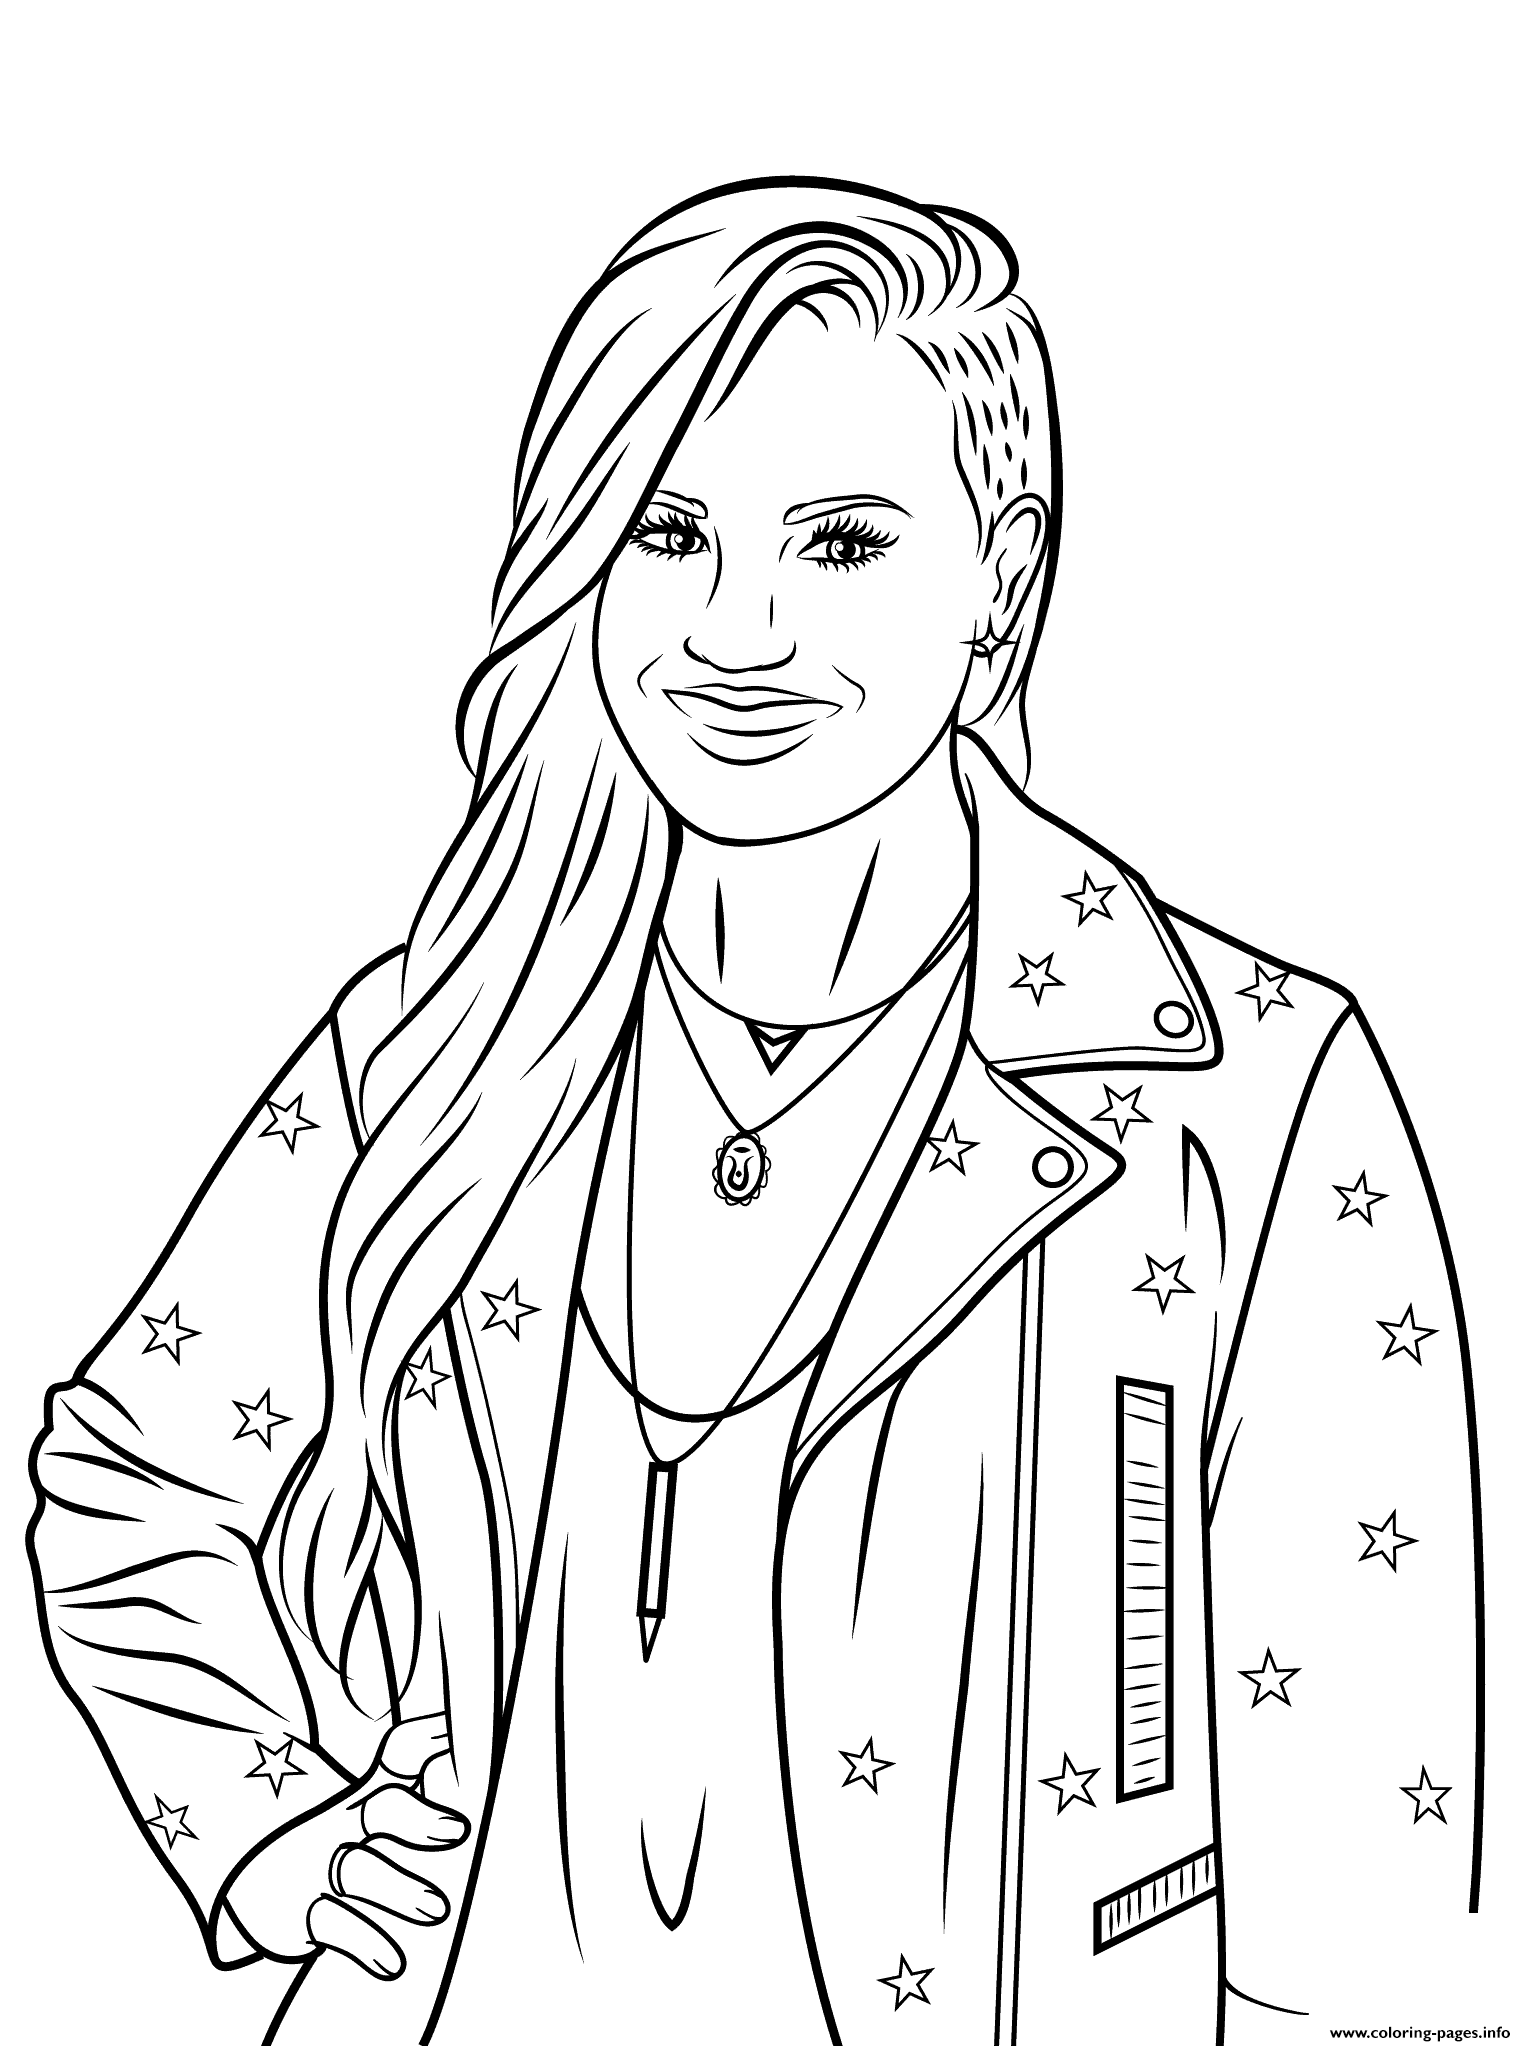 celebrities coloring pages - photo#9